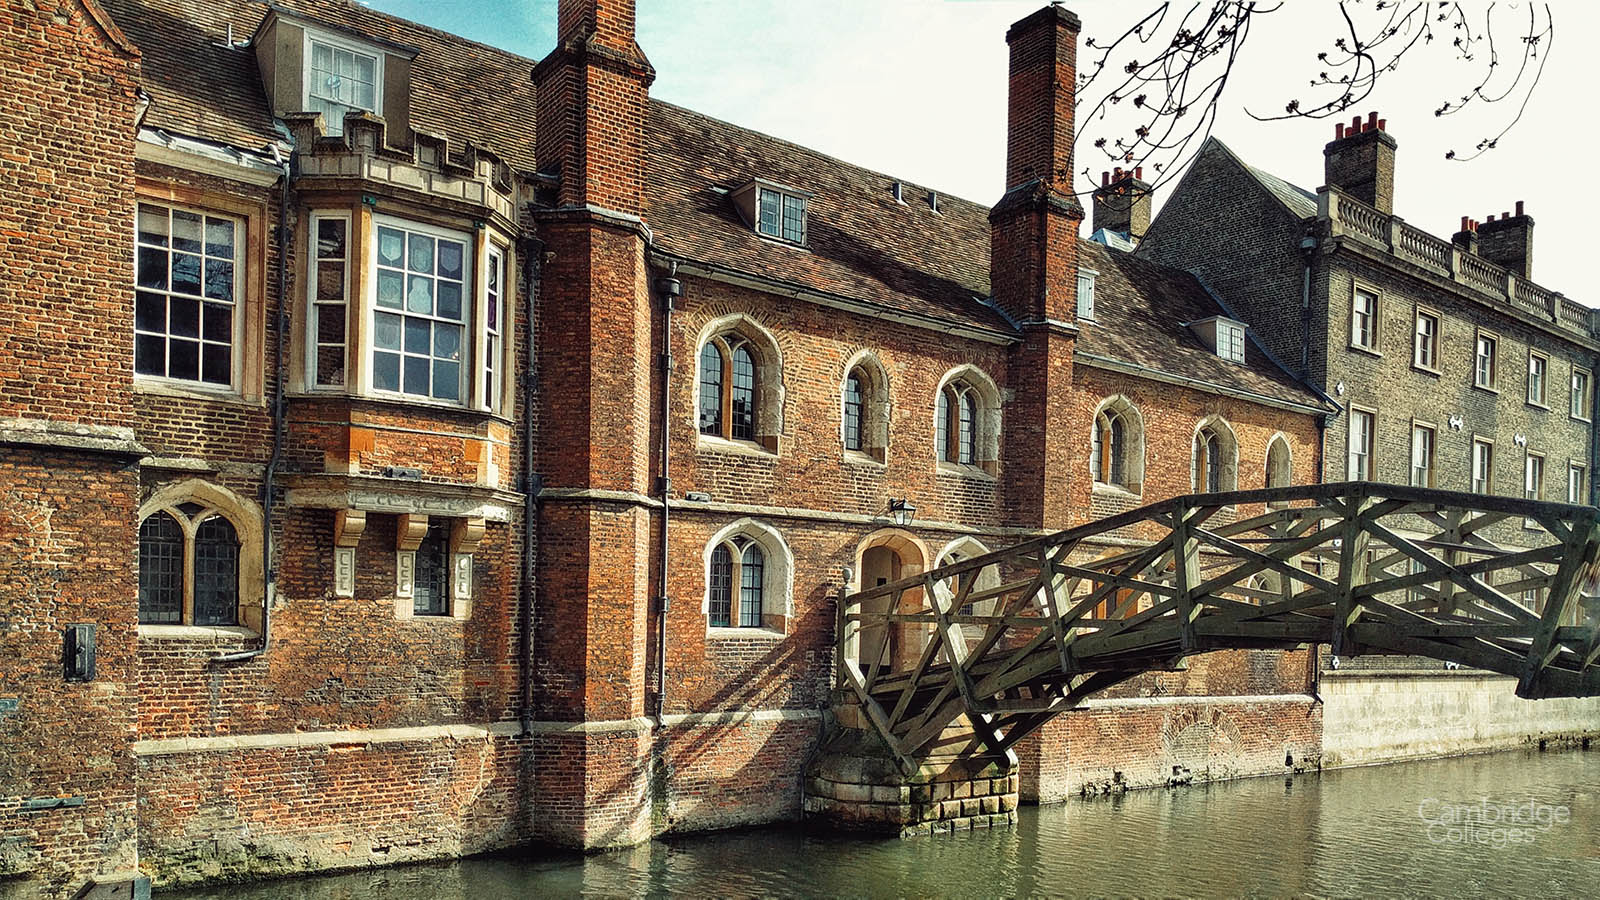 The wooden bridge, better known as the Mathematical bridge